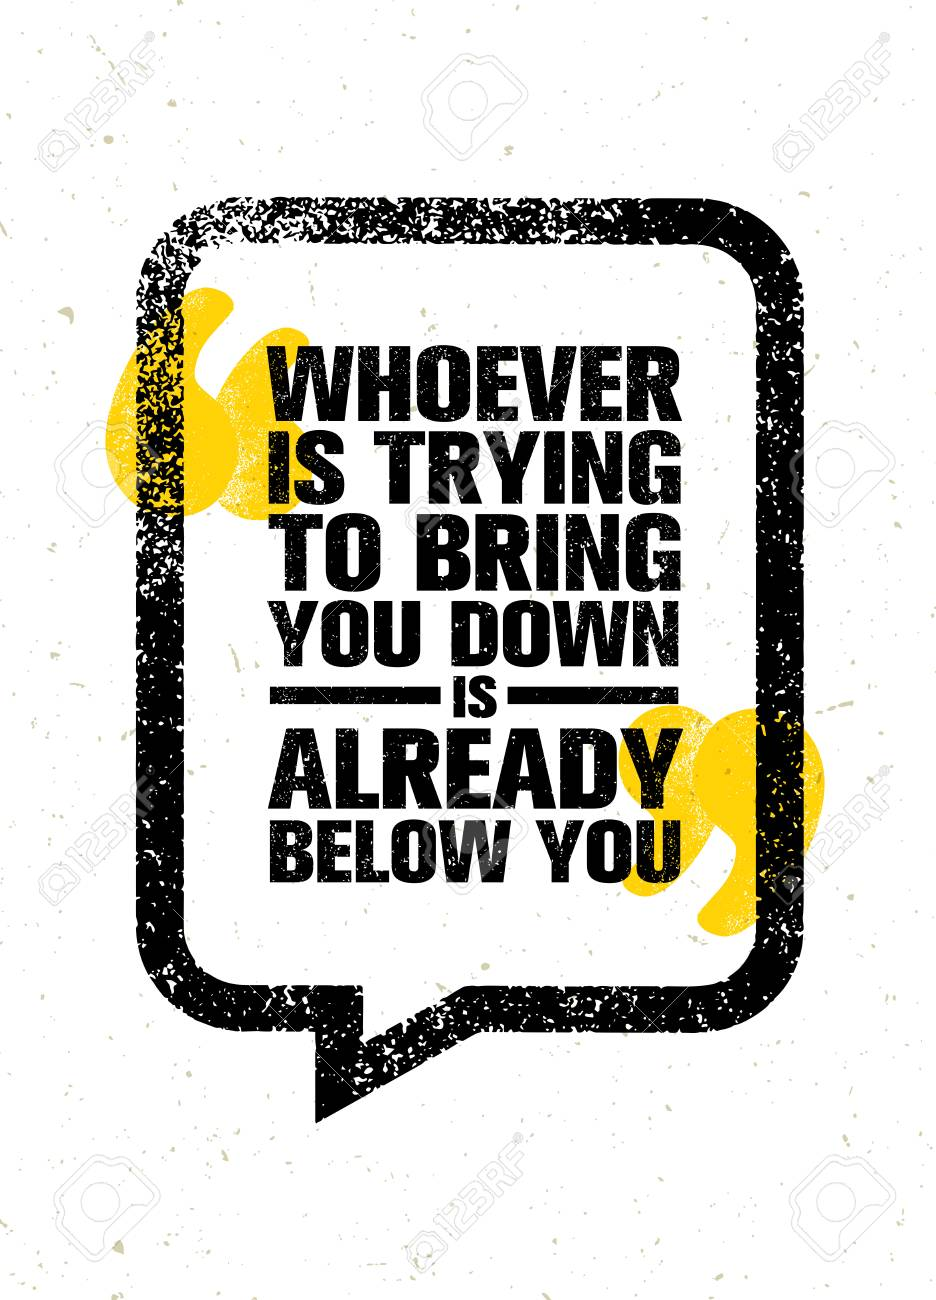 Whoever Is Trying To Bring You Down Is Already Below You. Inspiring ...